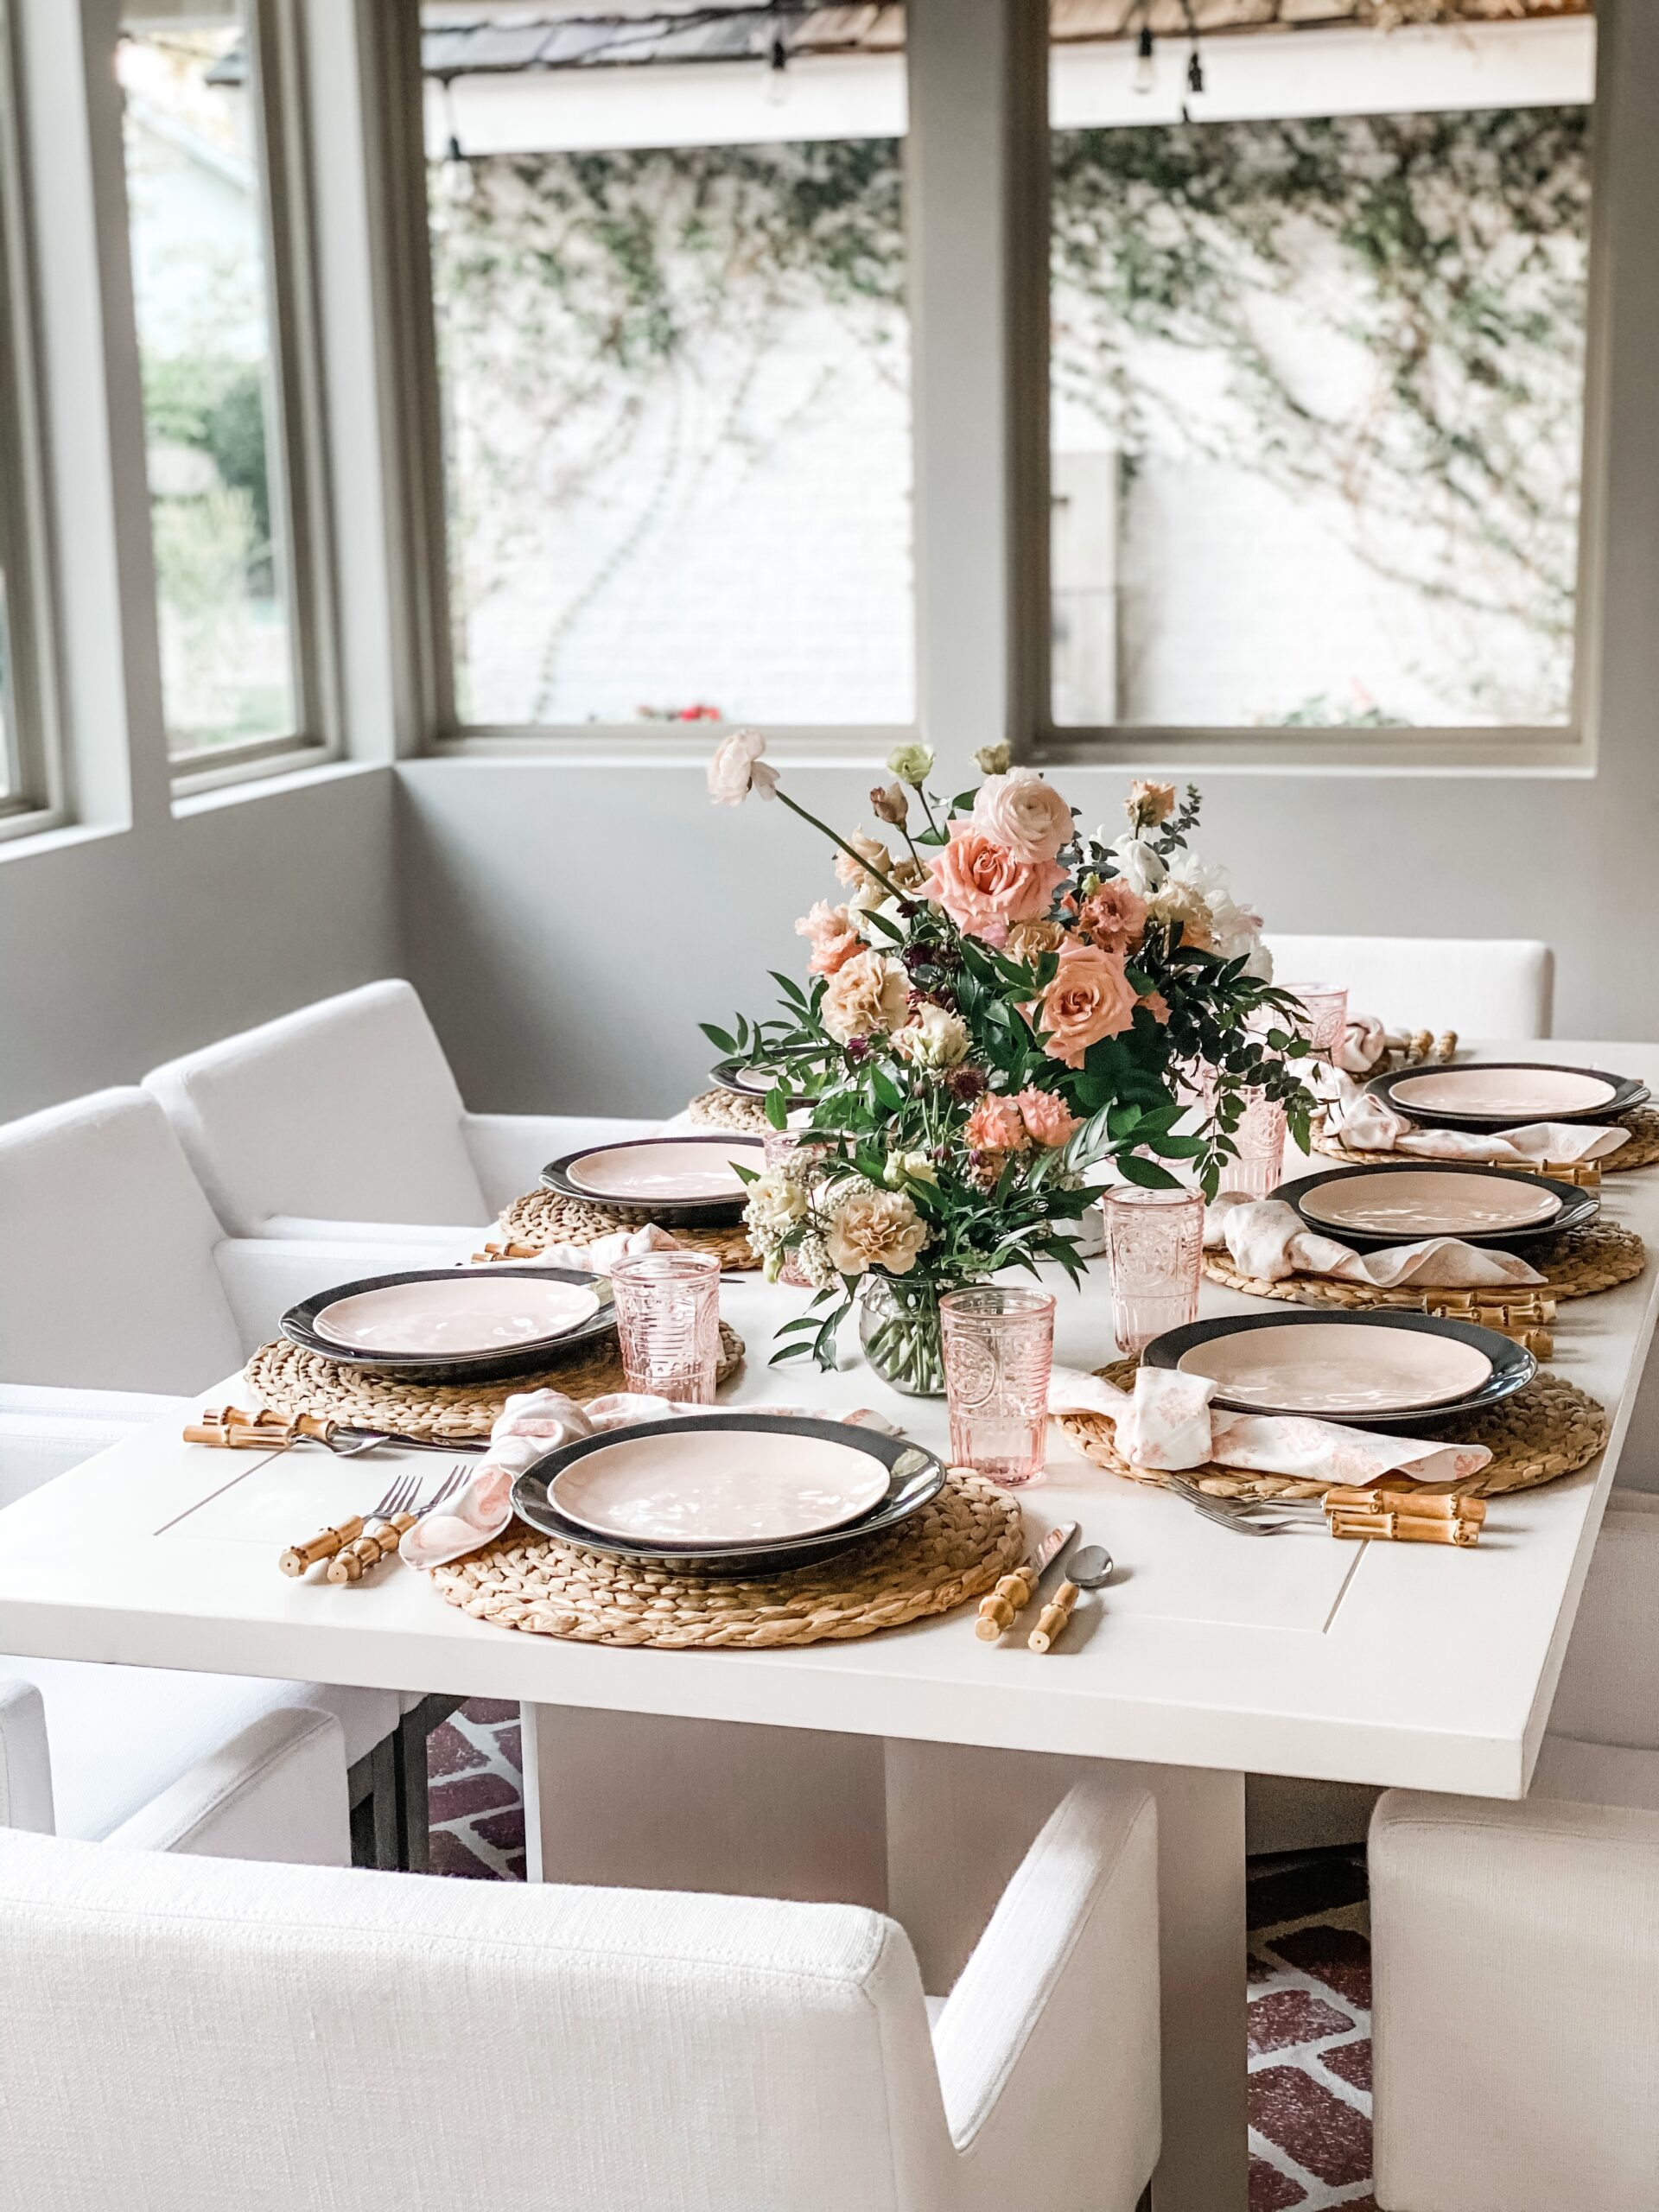 Spring Table Decor: Airy, Wild and Ethereal